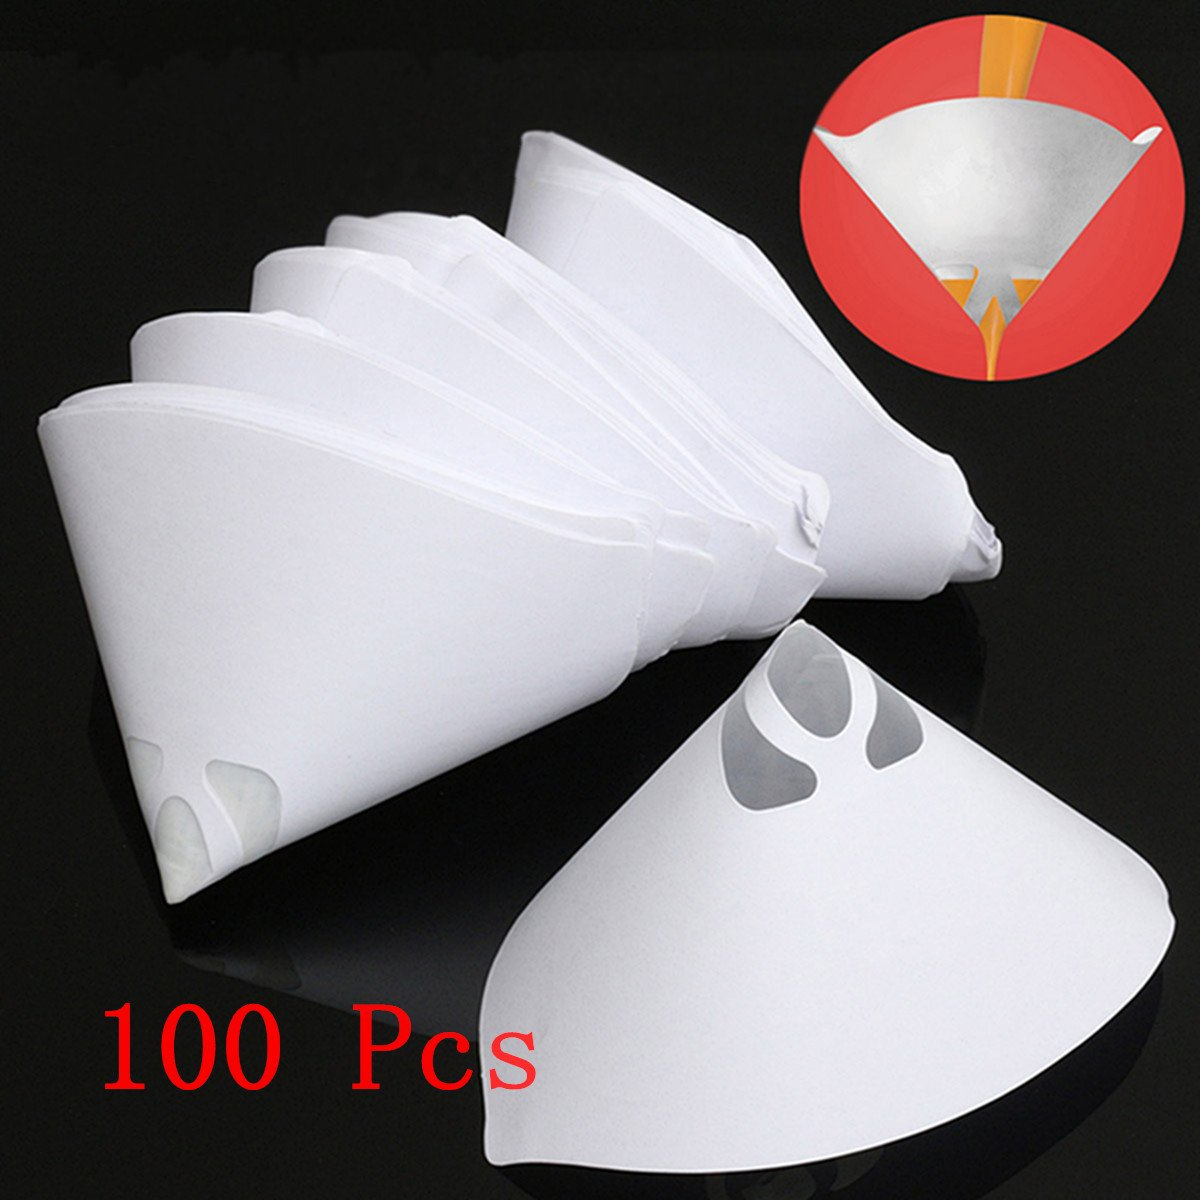 Jeteven 100 Pcs 100 Mesh/147 Micron Paper Paint Strainers Conical Strainers Filter Tip Paper Nylon Mesh Cone Filter Sieve